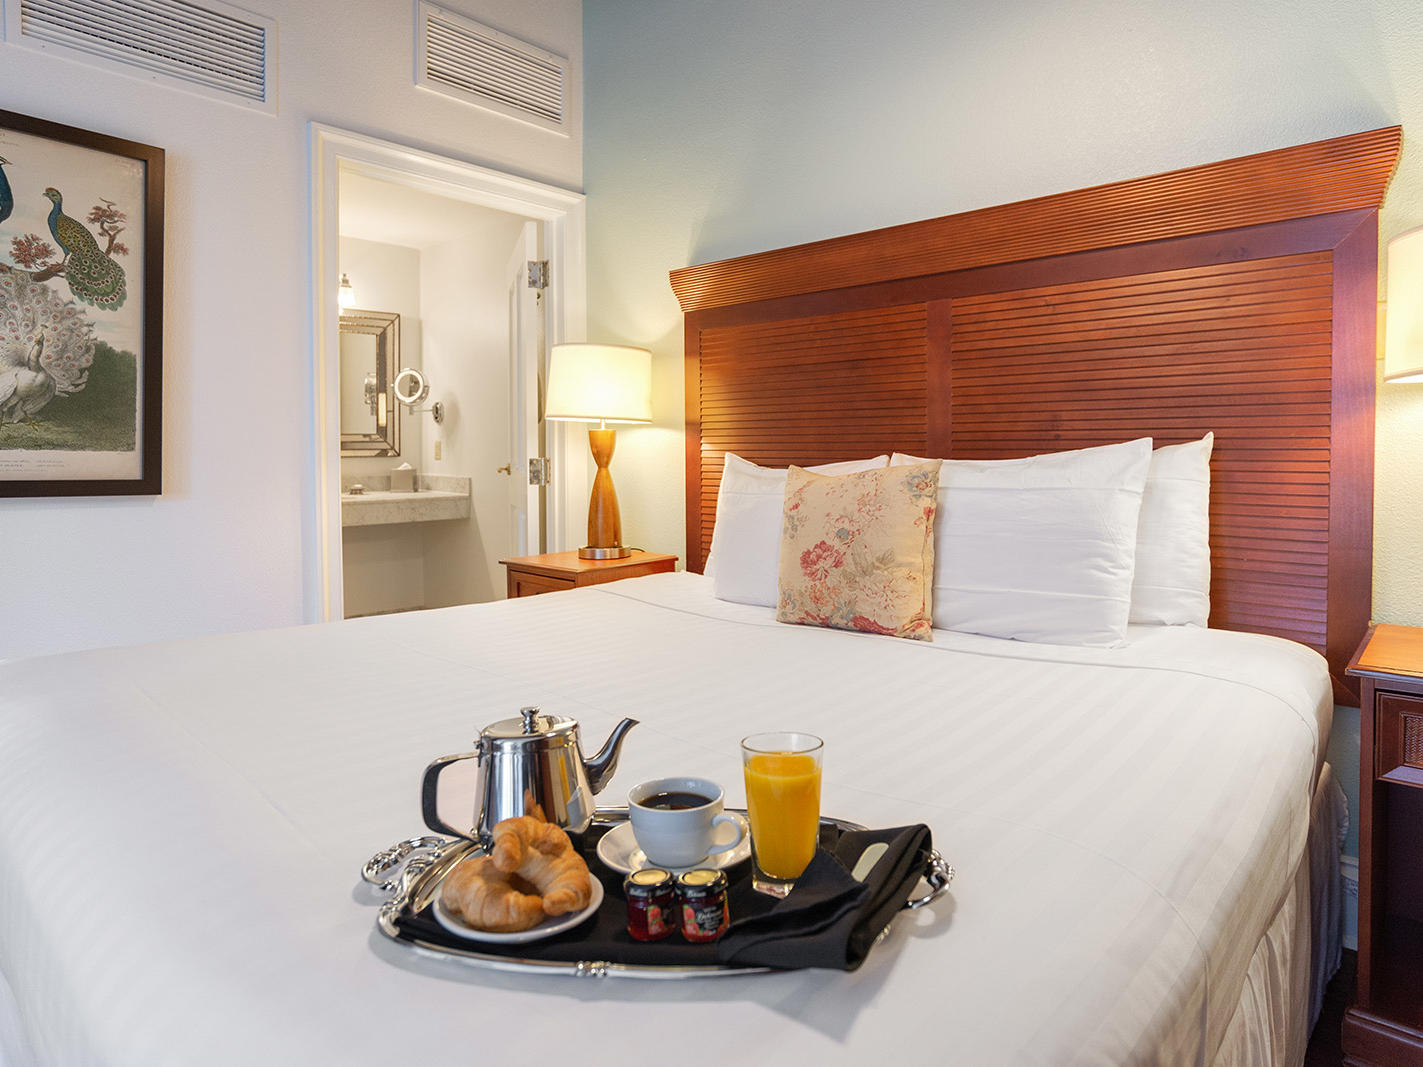 Breakfast on bed in Traditional One Queen Bed Room at St. James Hotel